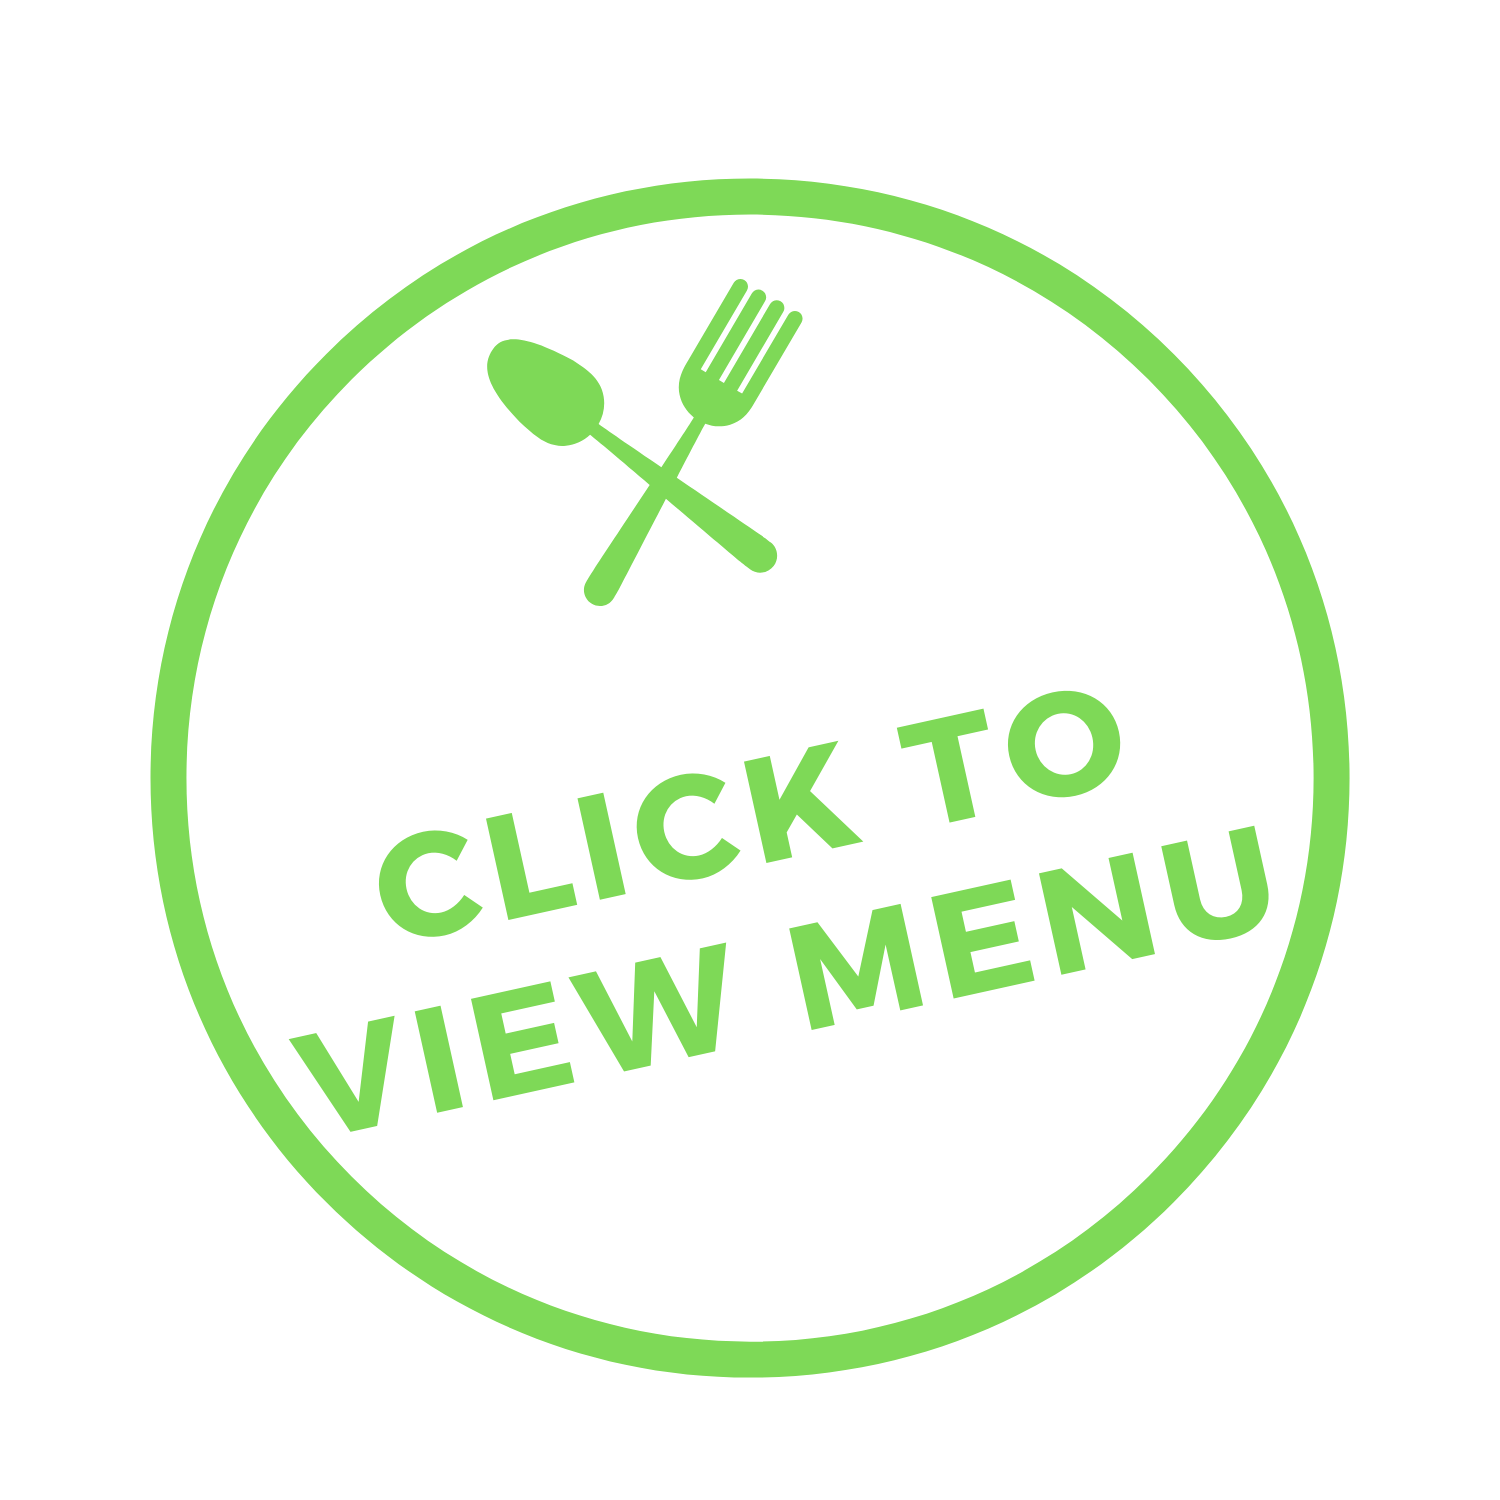 Link to View Menu